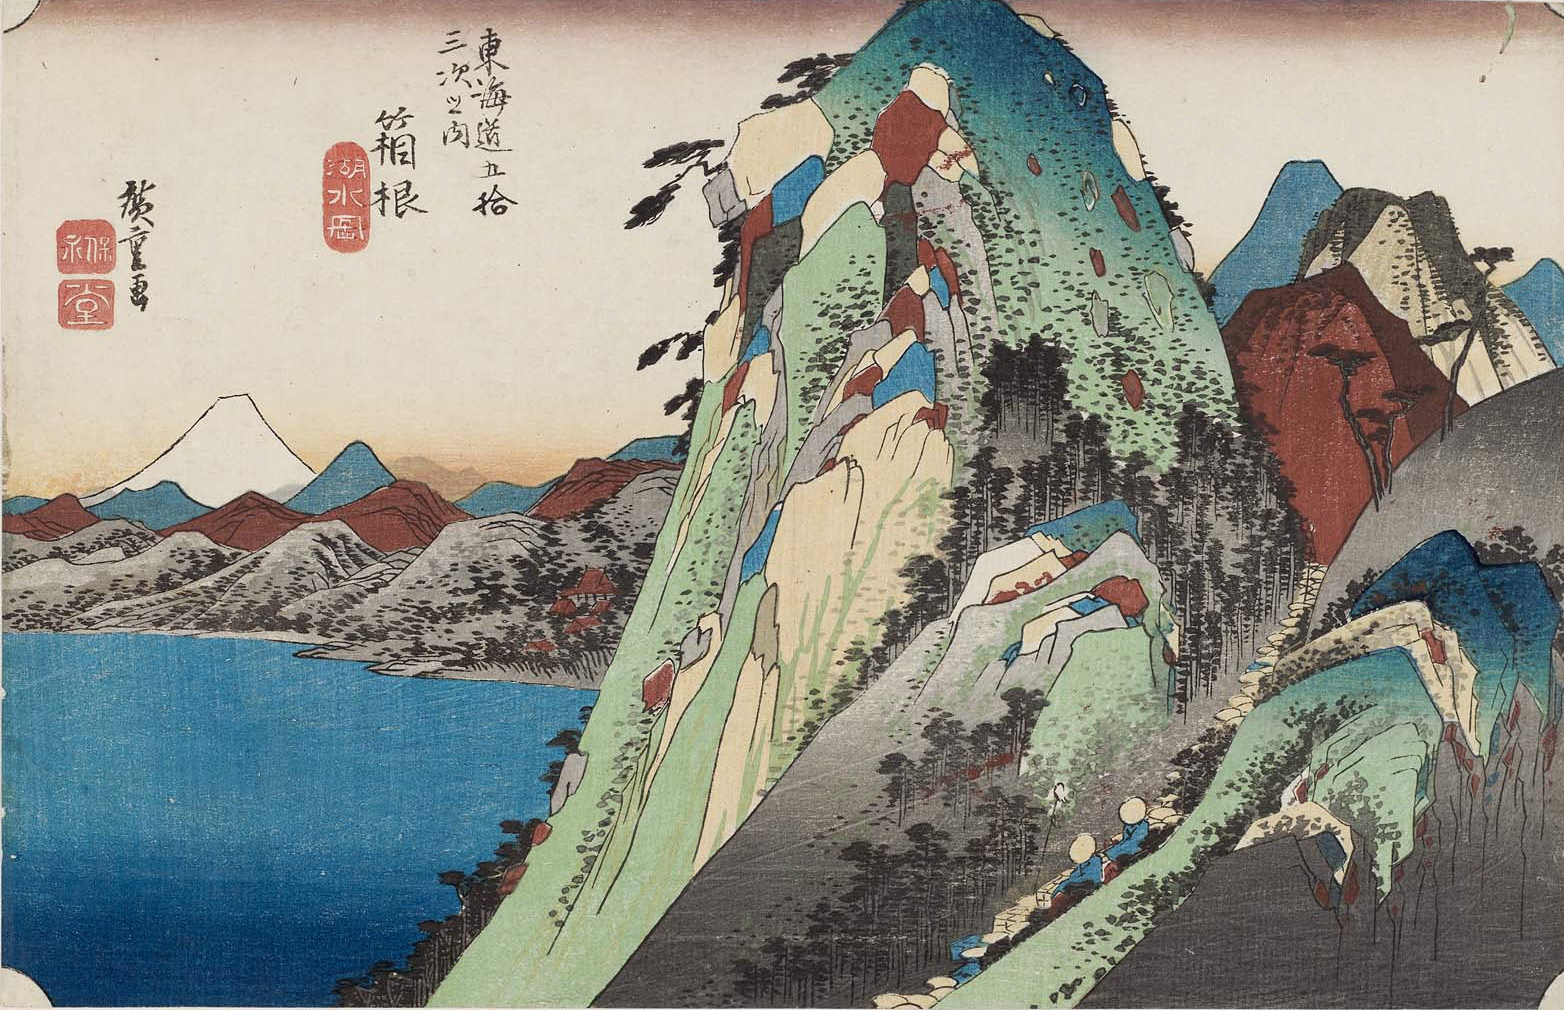 Digital // Utagawa Hiroshige's Fifty-Three Stations of the Tōkaidō (StoryMapJS)